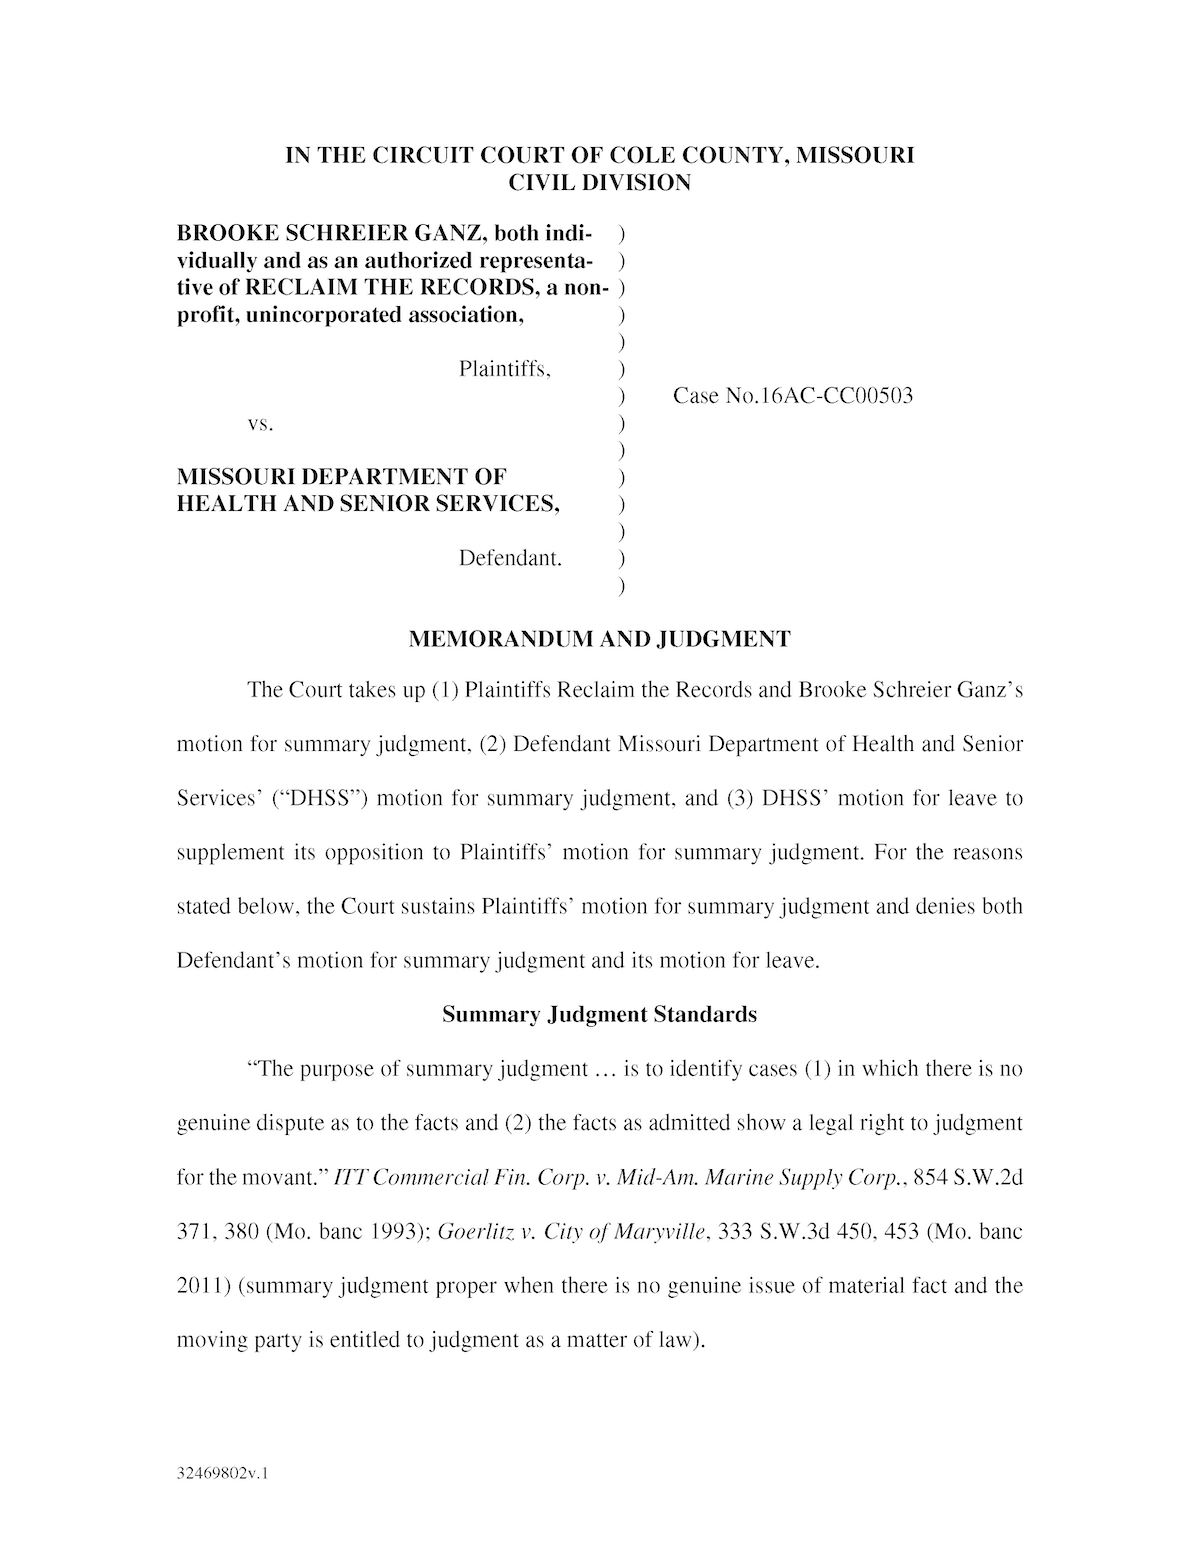 Judge's order for Summary Judgment (April 15, 2020)